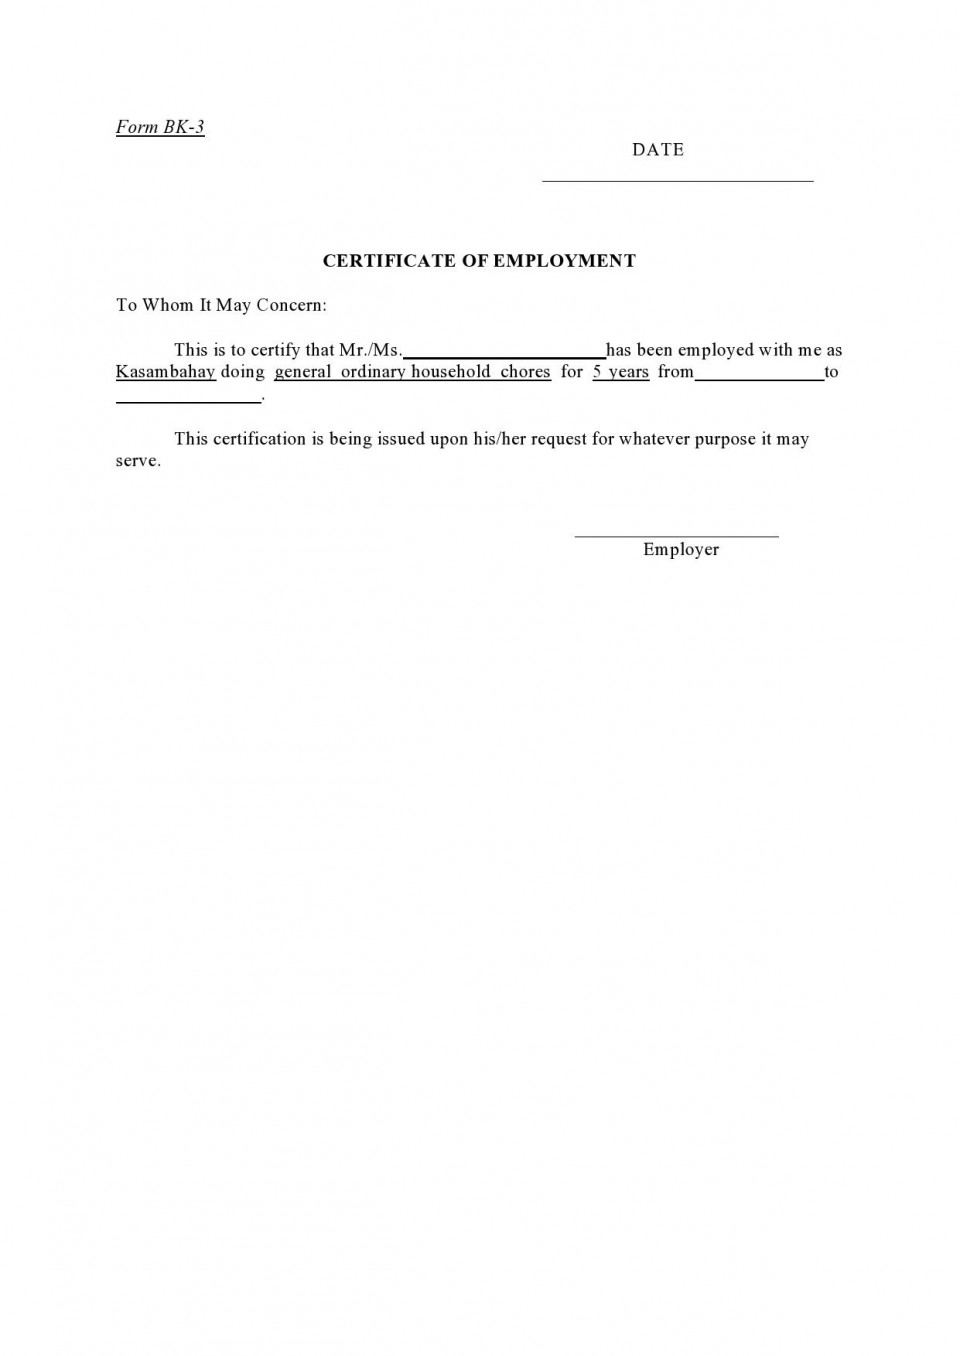 004 Incredible Proof Of Employment Letter Template Canada High Definition  Confirmation960